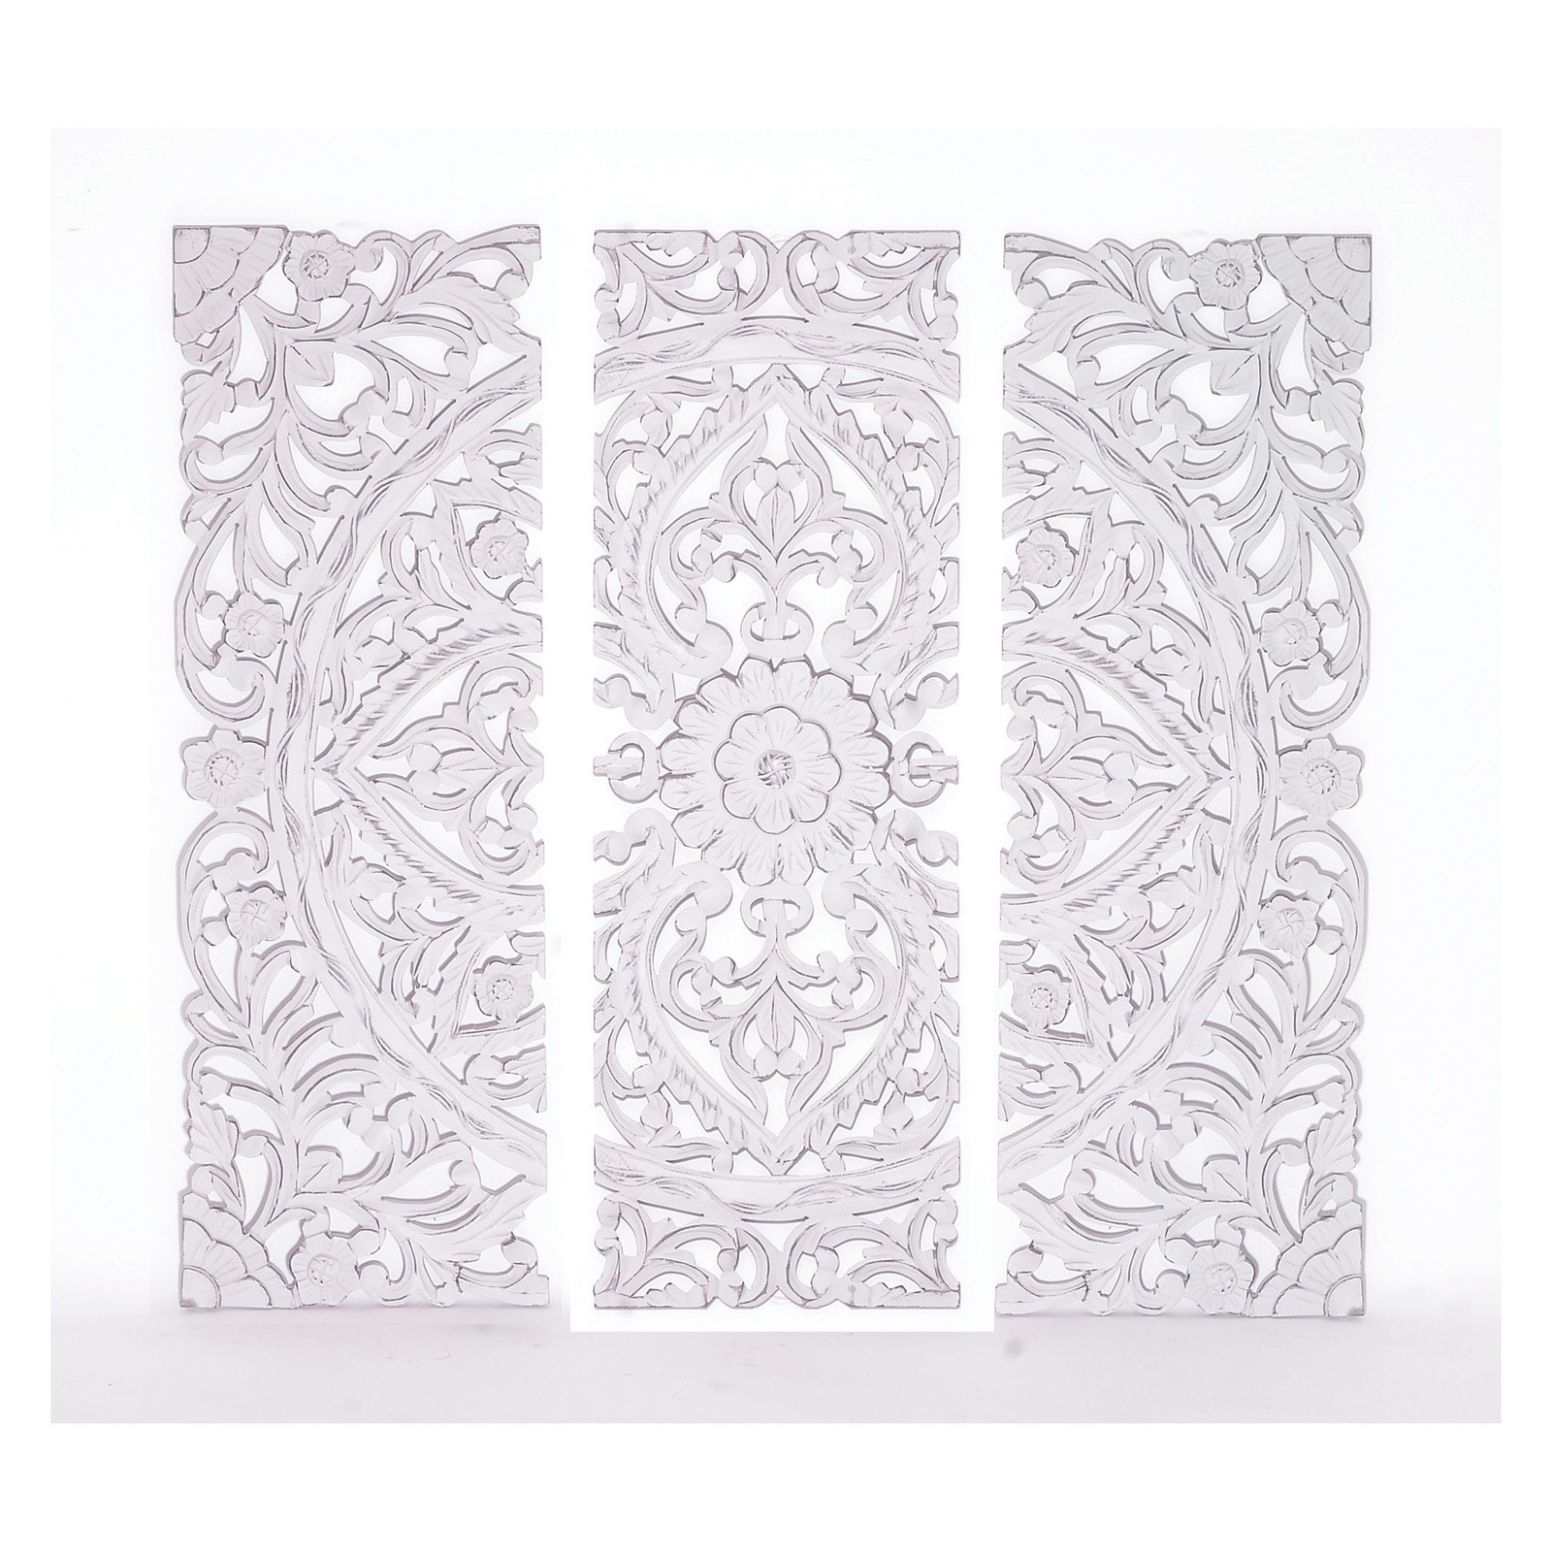 Carved Wood Wall Art White - Umatobi regarding Carved Wood Wall Art (Image 9 of 20)